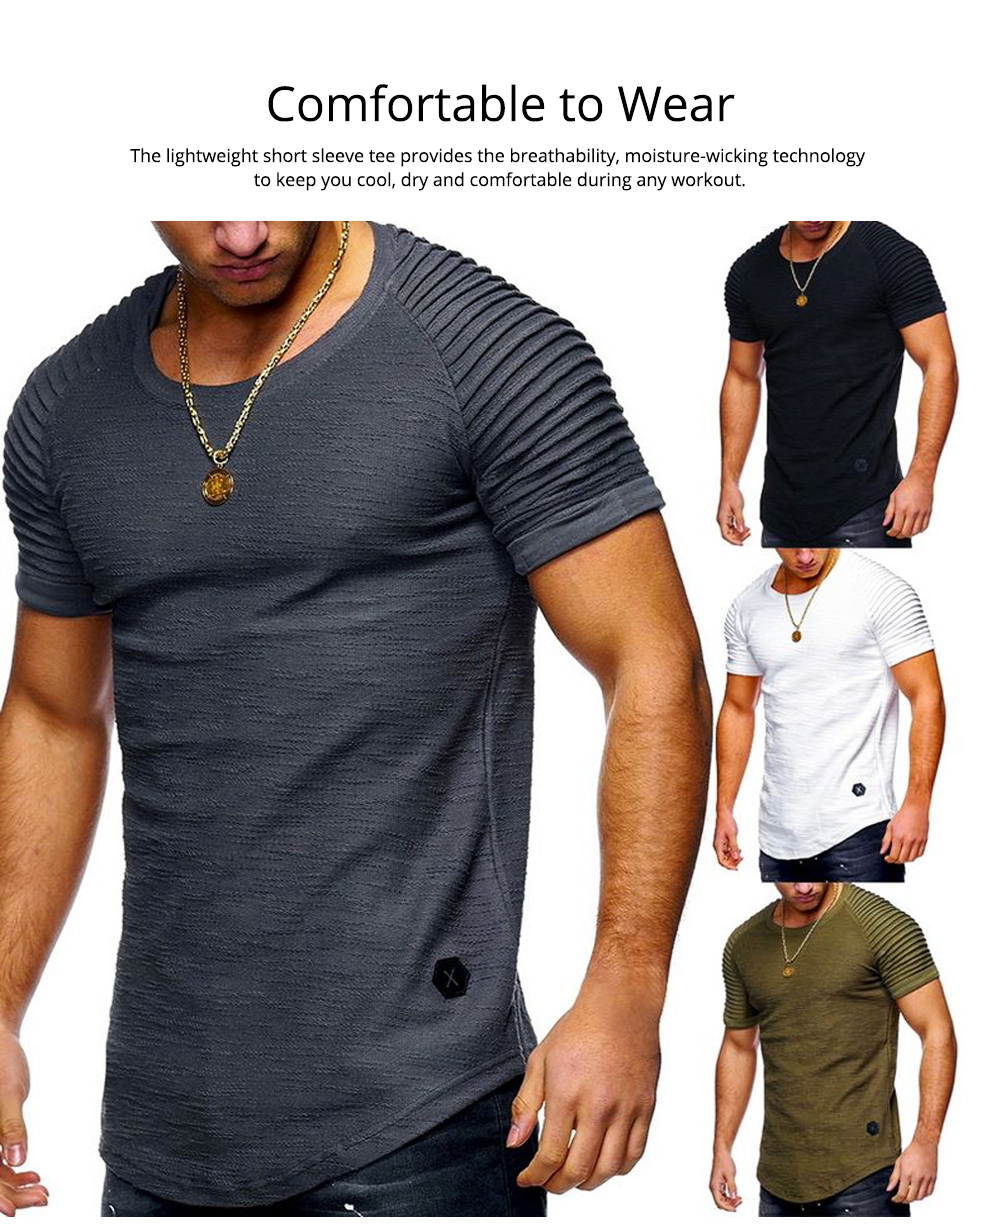 Men's Pure Color T-shirt Wrinkled Short Sleeve Shirt Fashion Stretch Sports Quick-dry T-Shirt 2